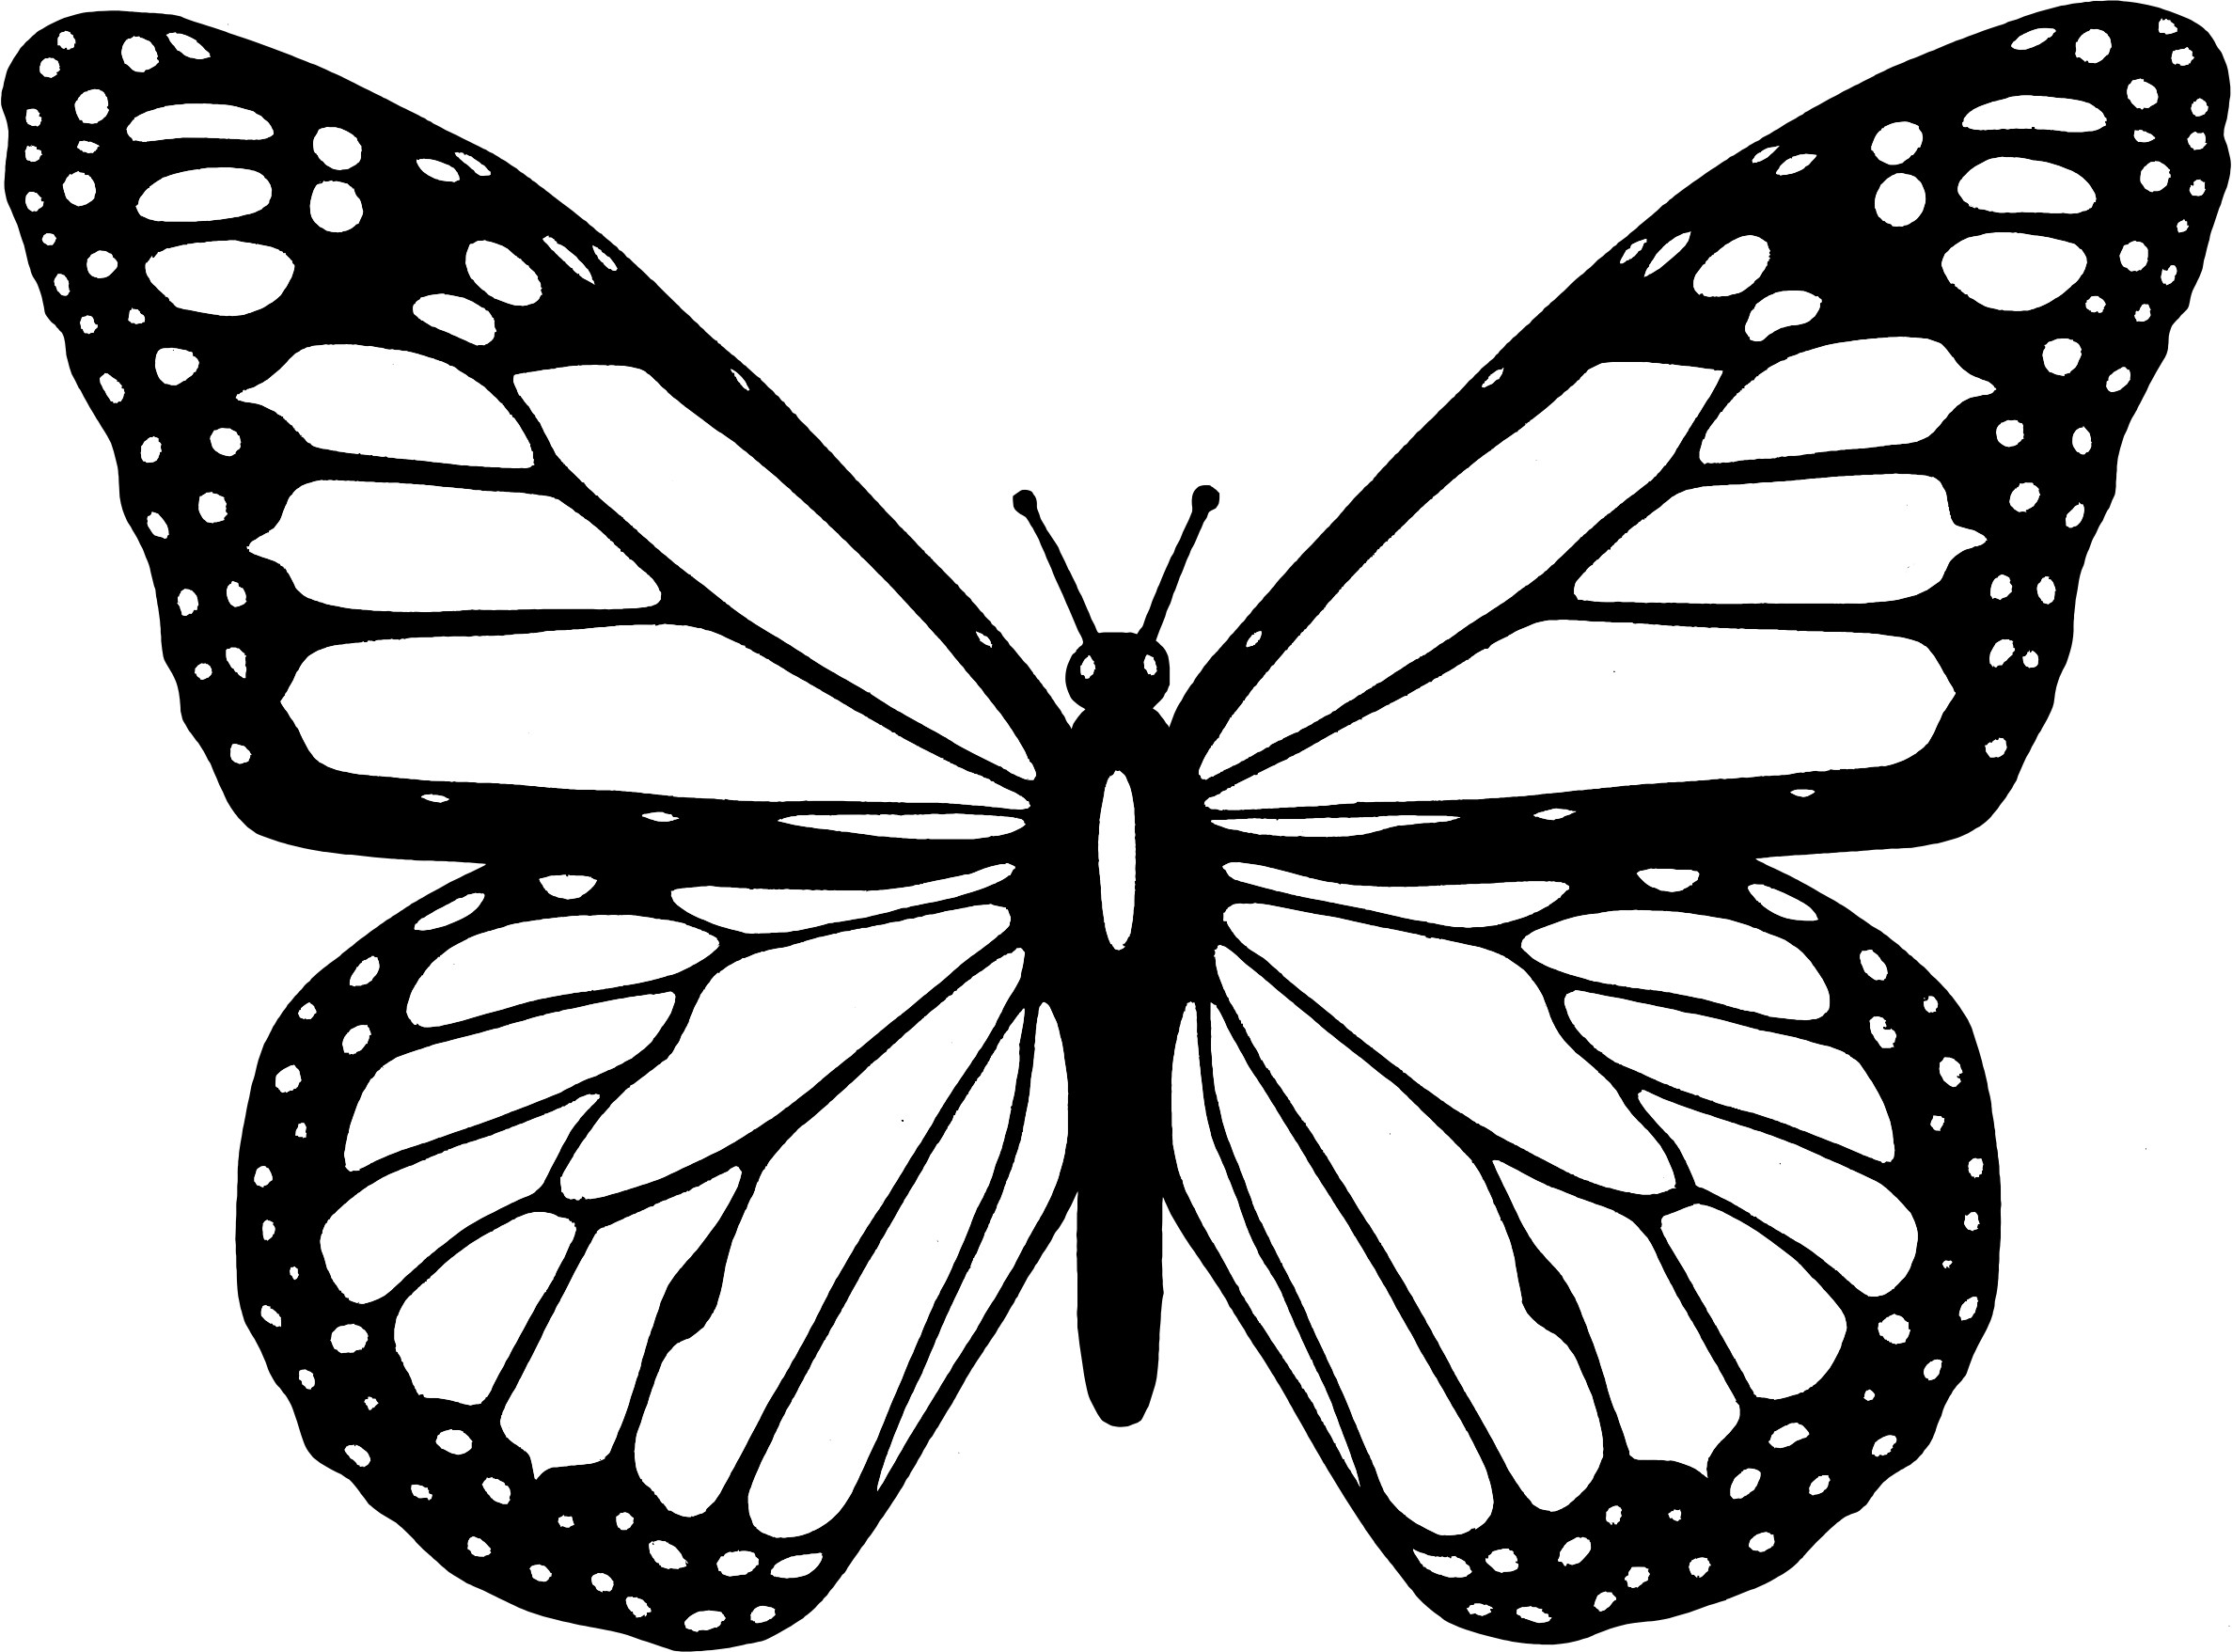 49 Unique S Monarch butterfly Coloring Pages Printable – Free ...